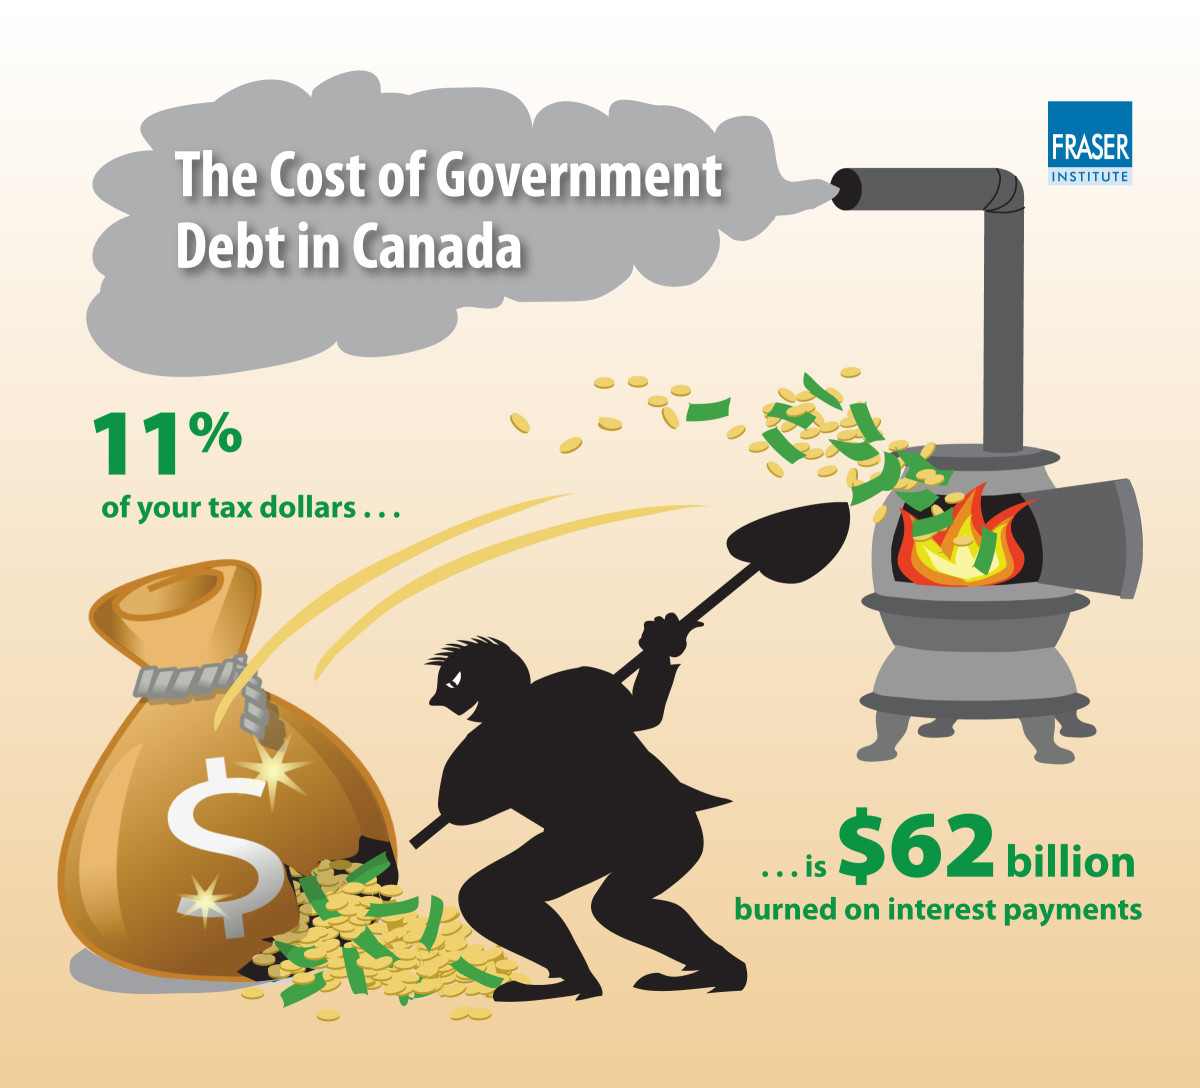 How Can We Pay Our Debt When Our Government Can't Pay Theirs?